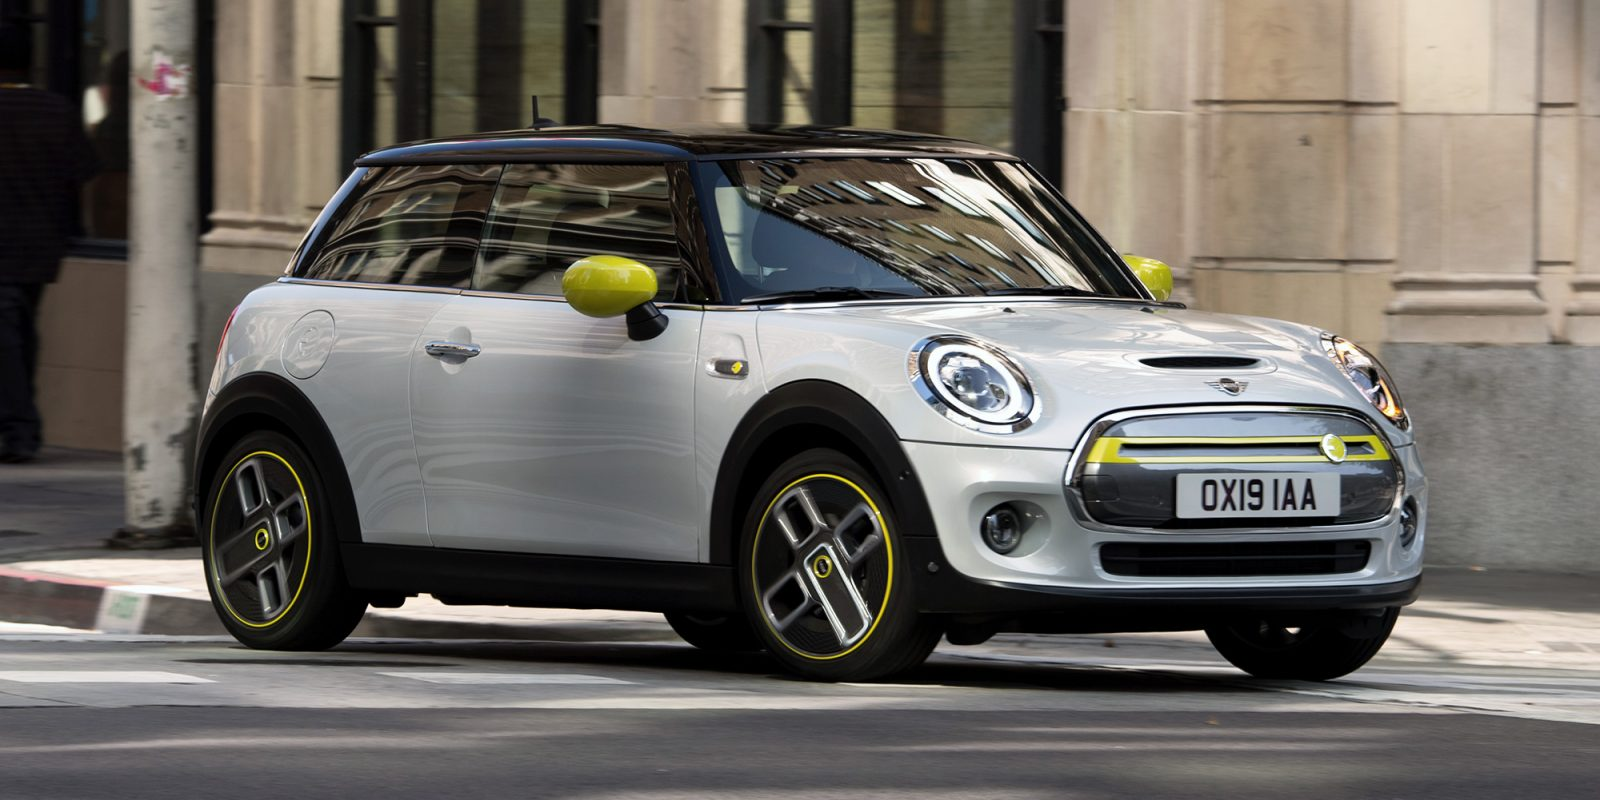 New electric Mini has 110 miles of range, and I still want it